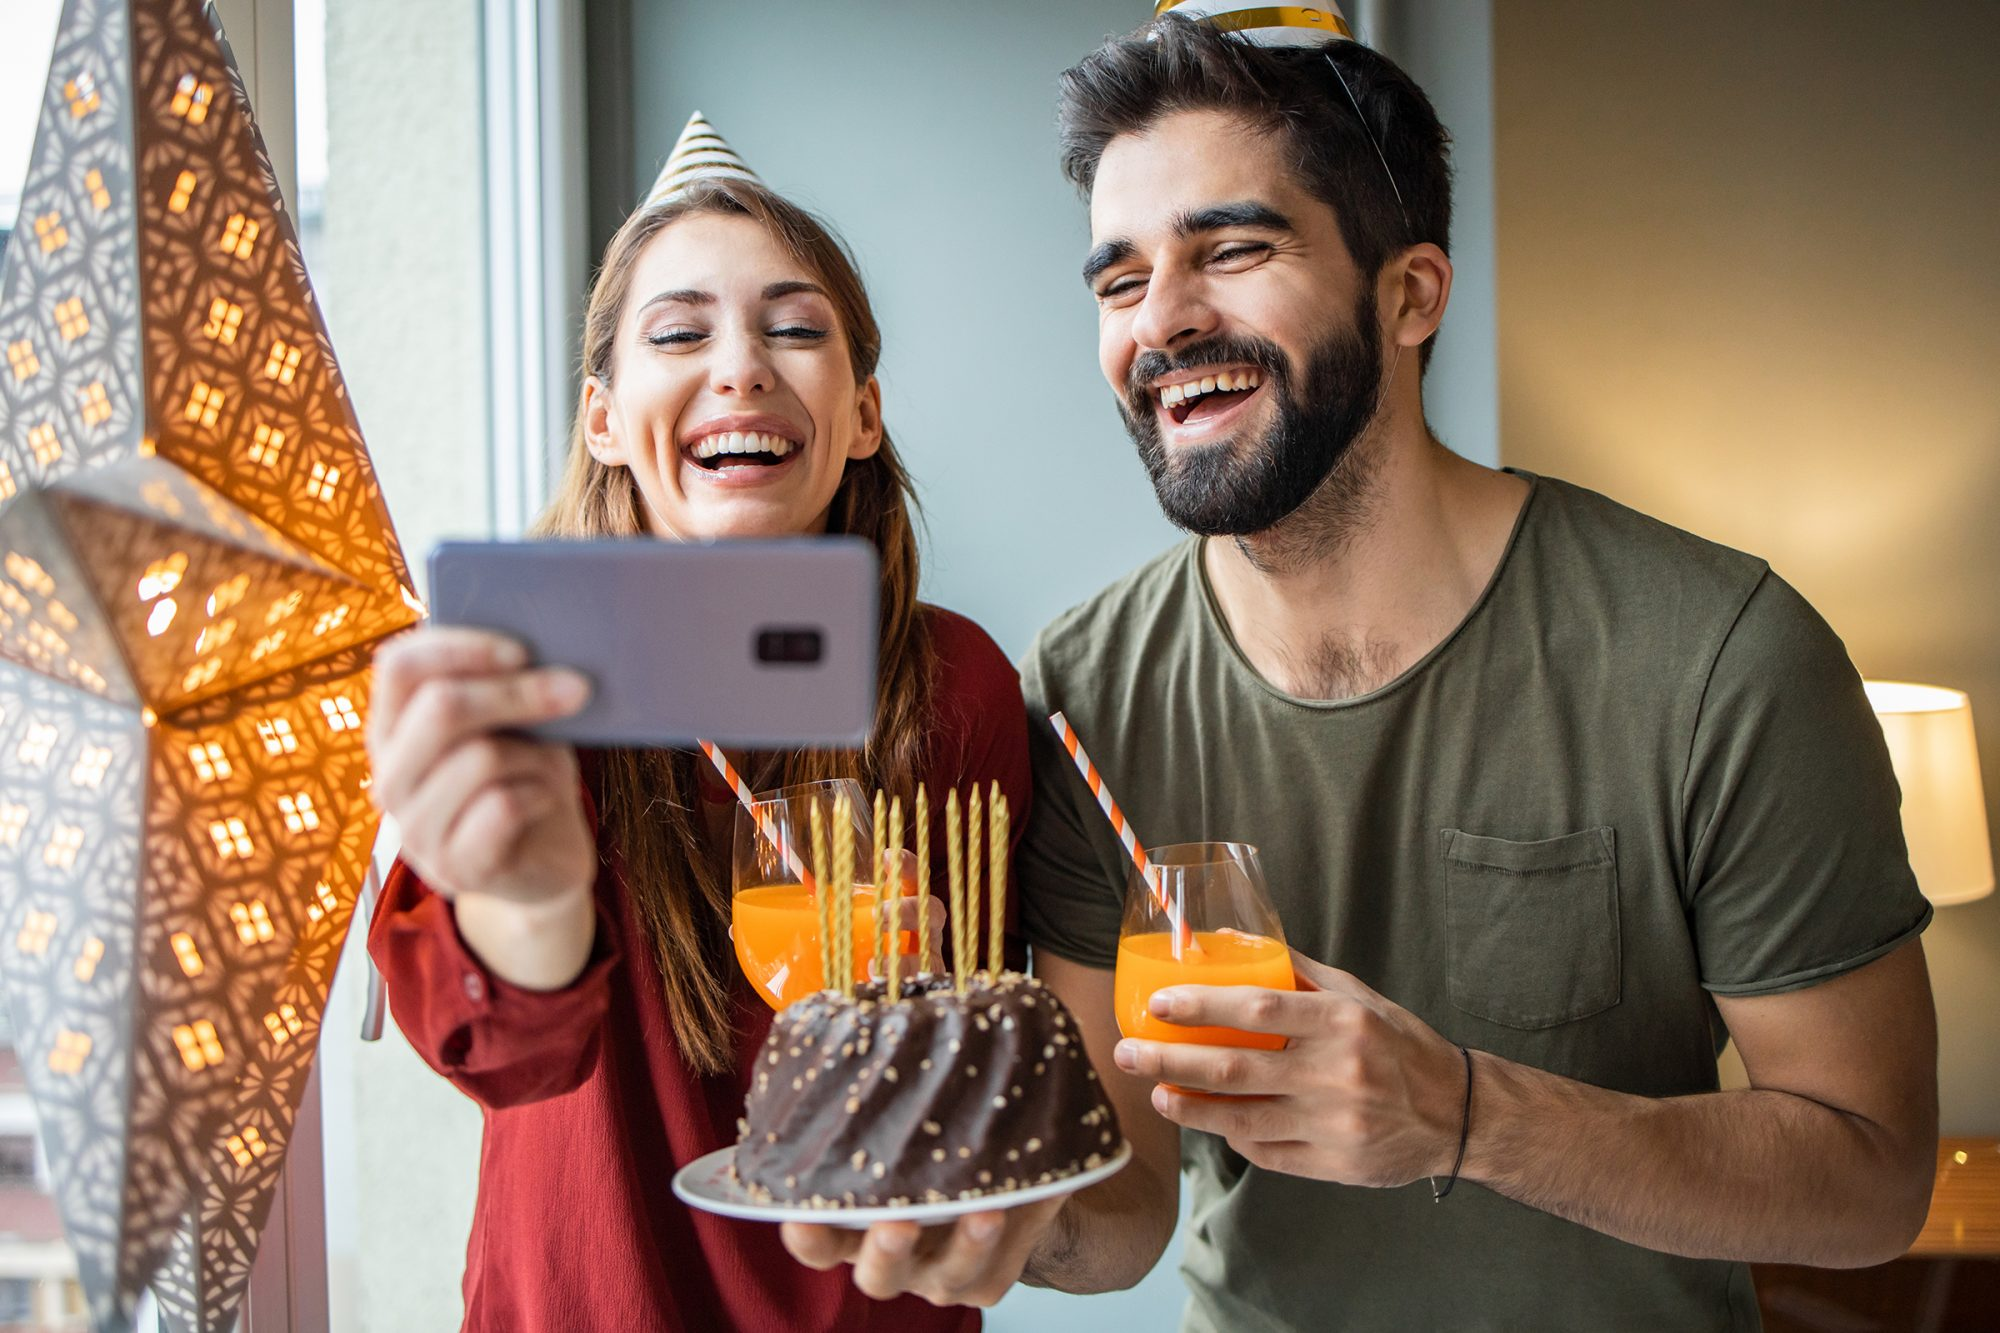 Happy couple on a video call, celebrating birthday